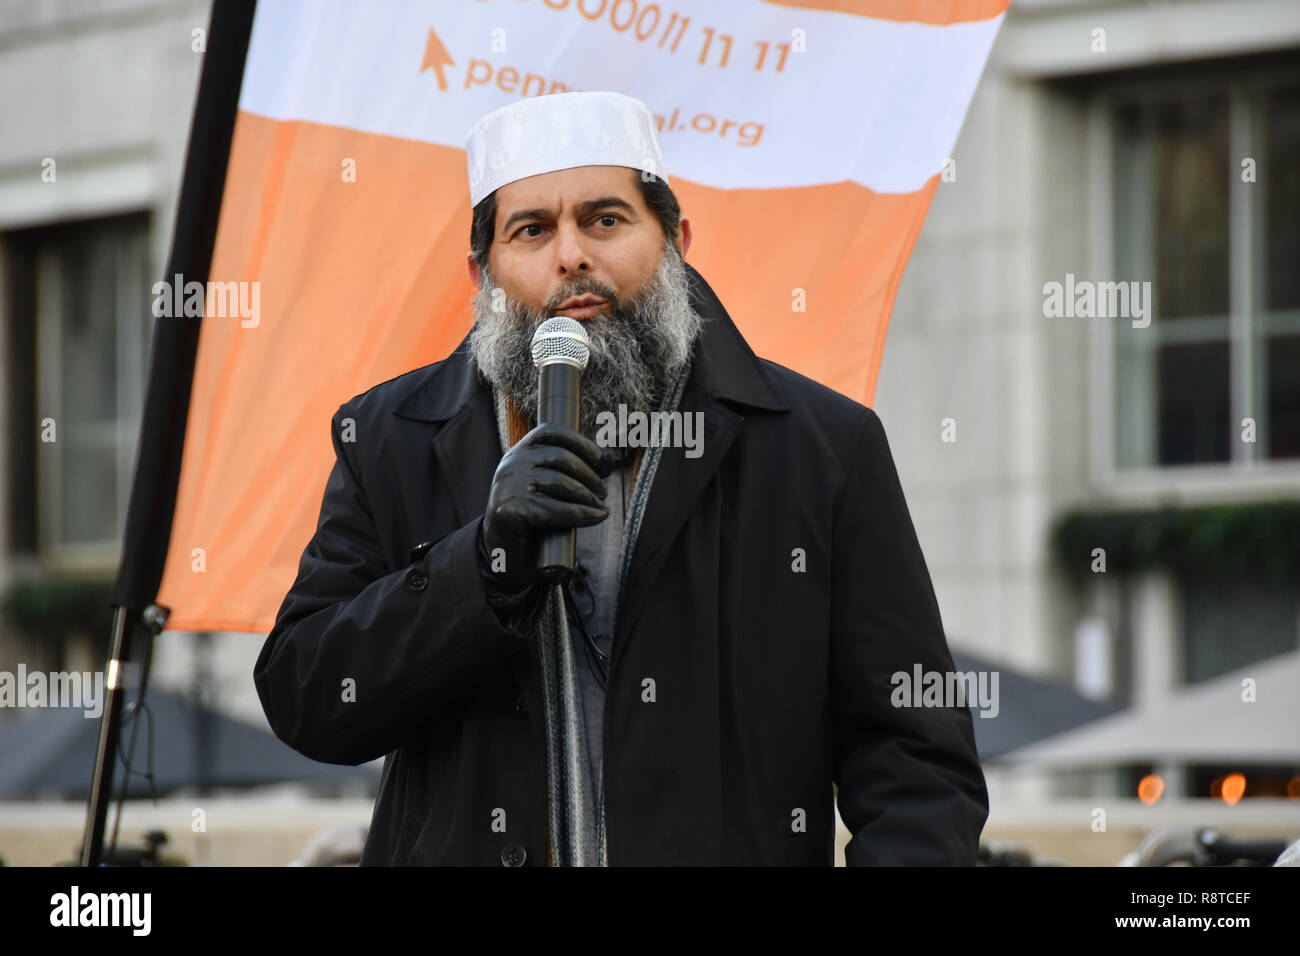 """London, UK. 17th Dec, 2018. Speaker Shaykh Ibrahim Mogra at Penny Appeal Team Orange unveiling 5 life-size ice statues """"What Would Jesus Do?"""", symbolising homeless families to promote their winter campaign. The frozen family will depict the plight of the 140* families who become homeless everyday, and the 900* children who become homeless every month on 17th December at Canary Wharf, London, UK. Credit: Picture Capital/Alamy Live News - Stock Image"""